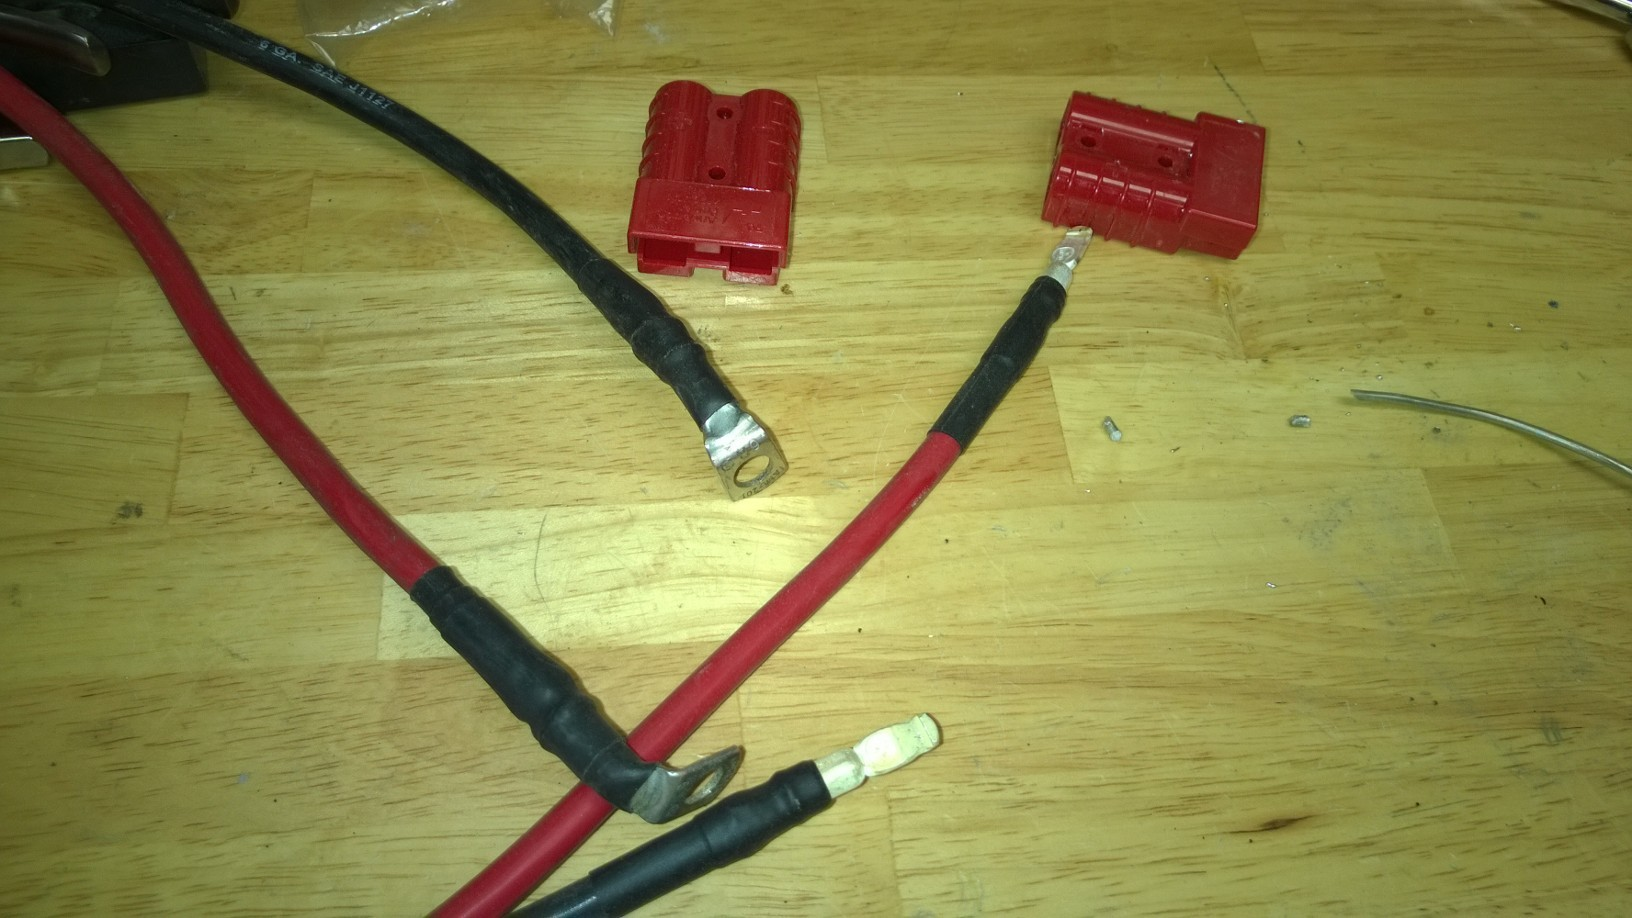 Handy battery terminal access-wires-ready-snap-into-anderson-plug.jpg